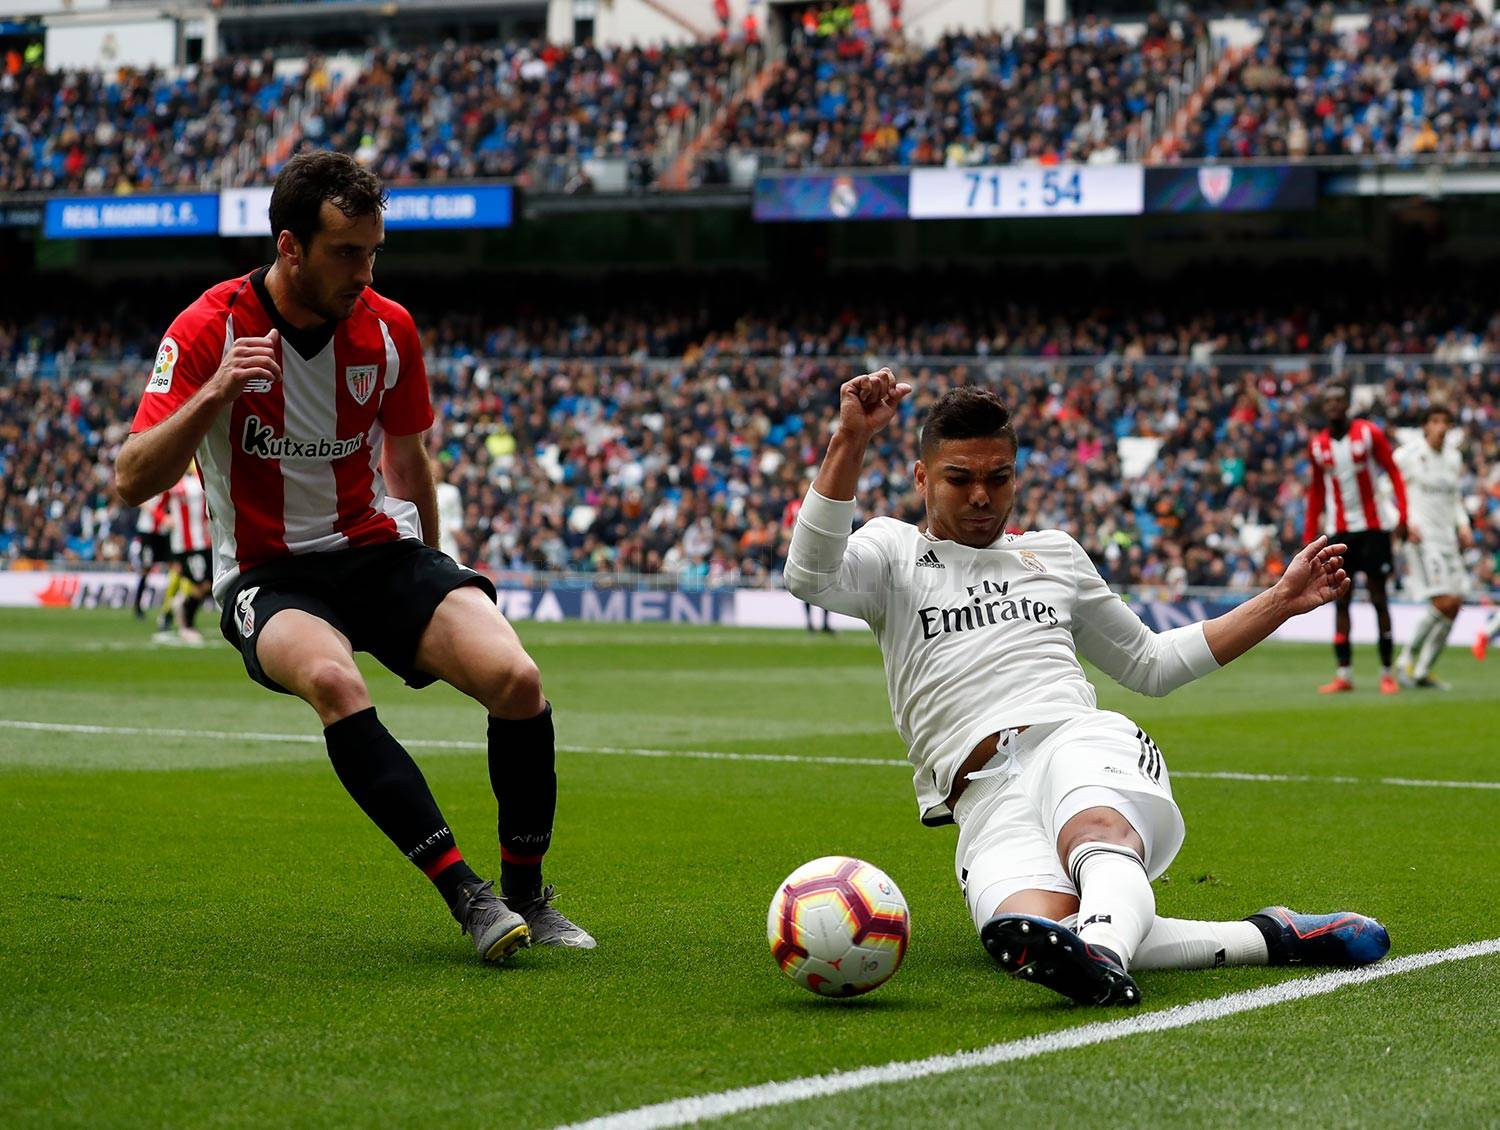 Real Madrid - Real Madrid - Athletic Club - 21-04-2019